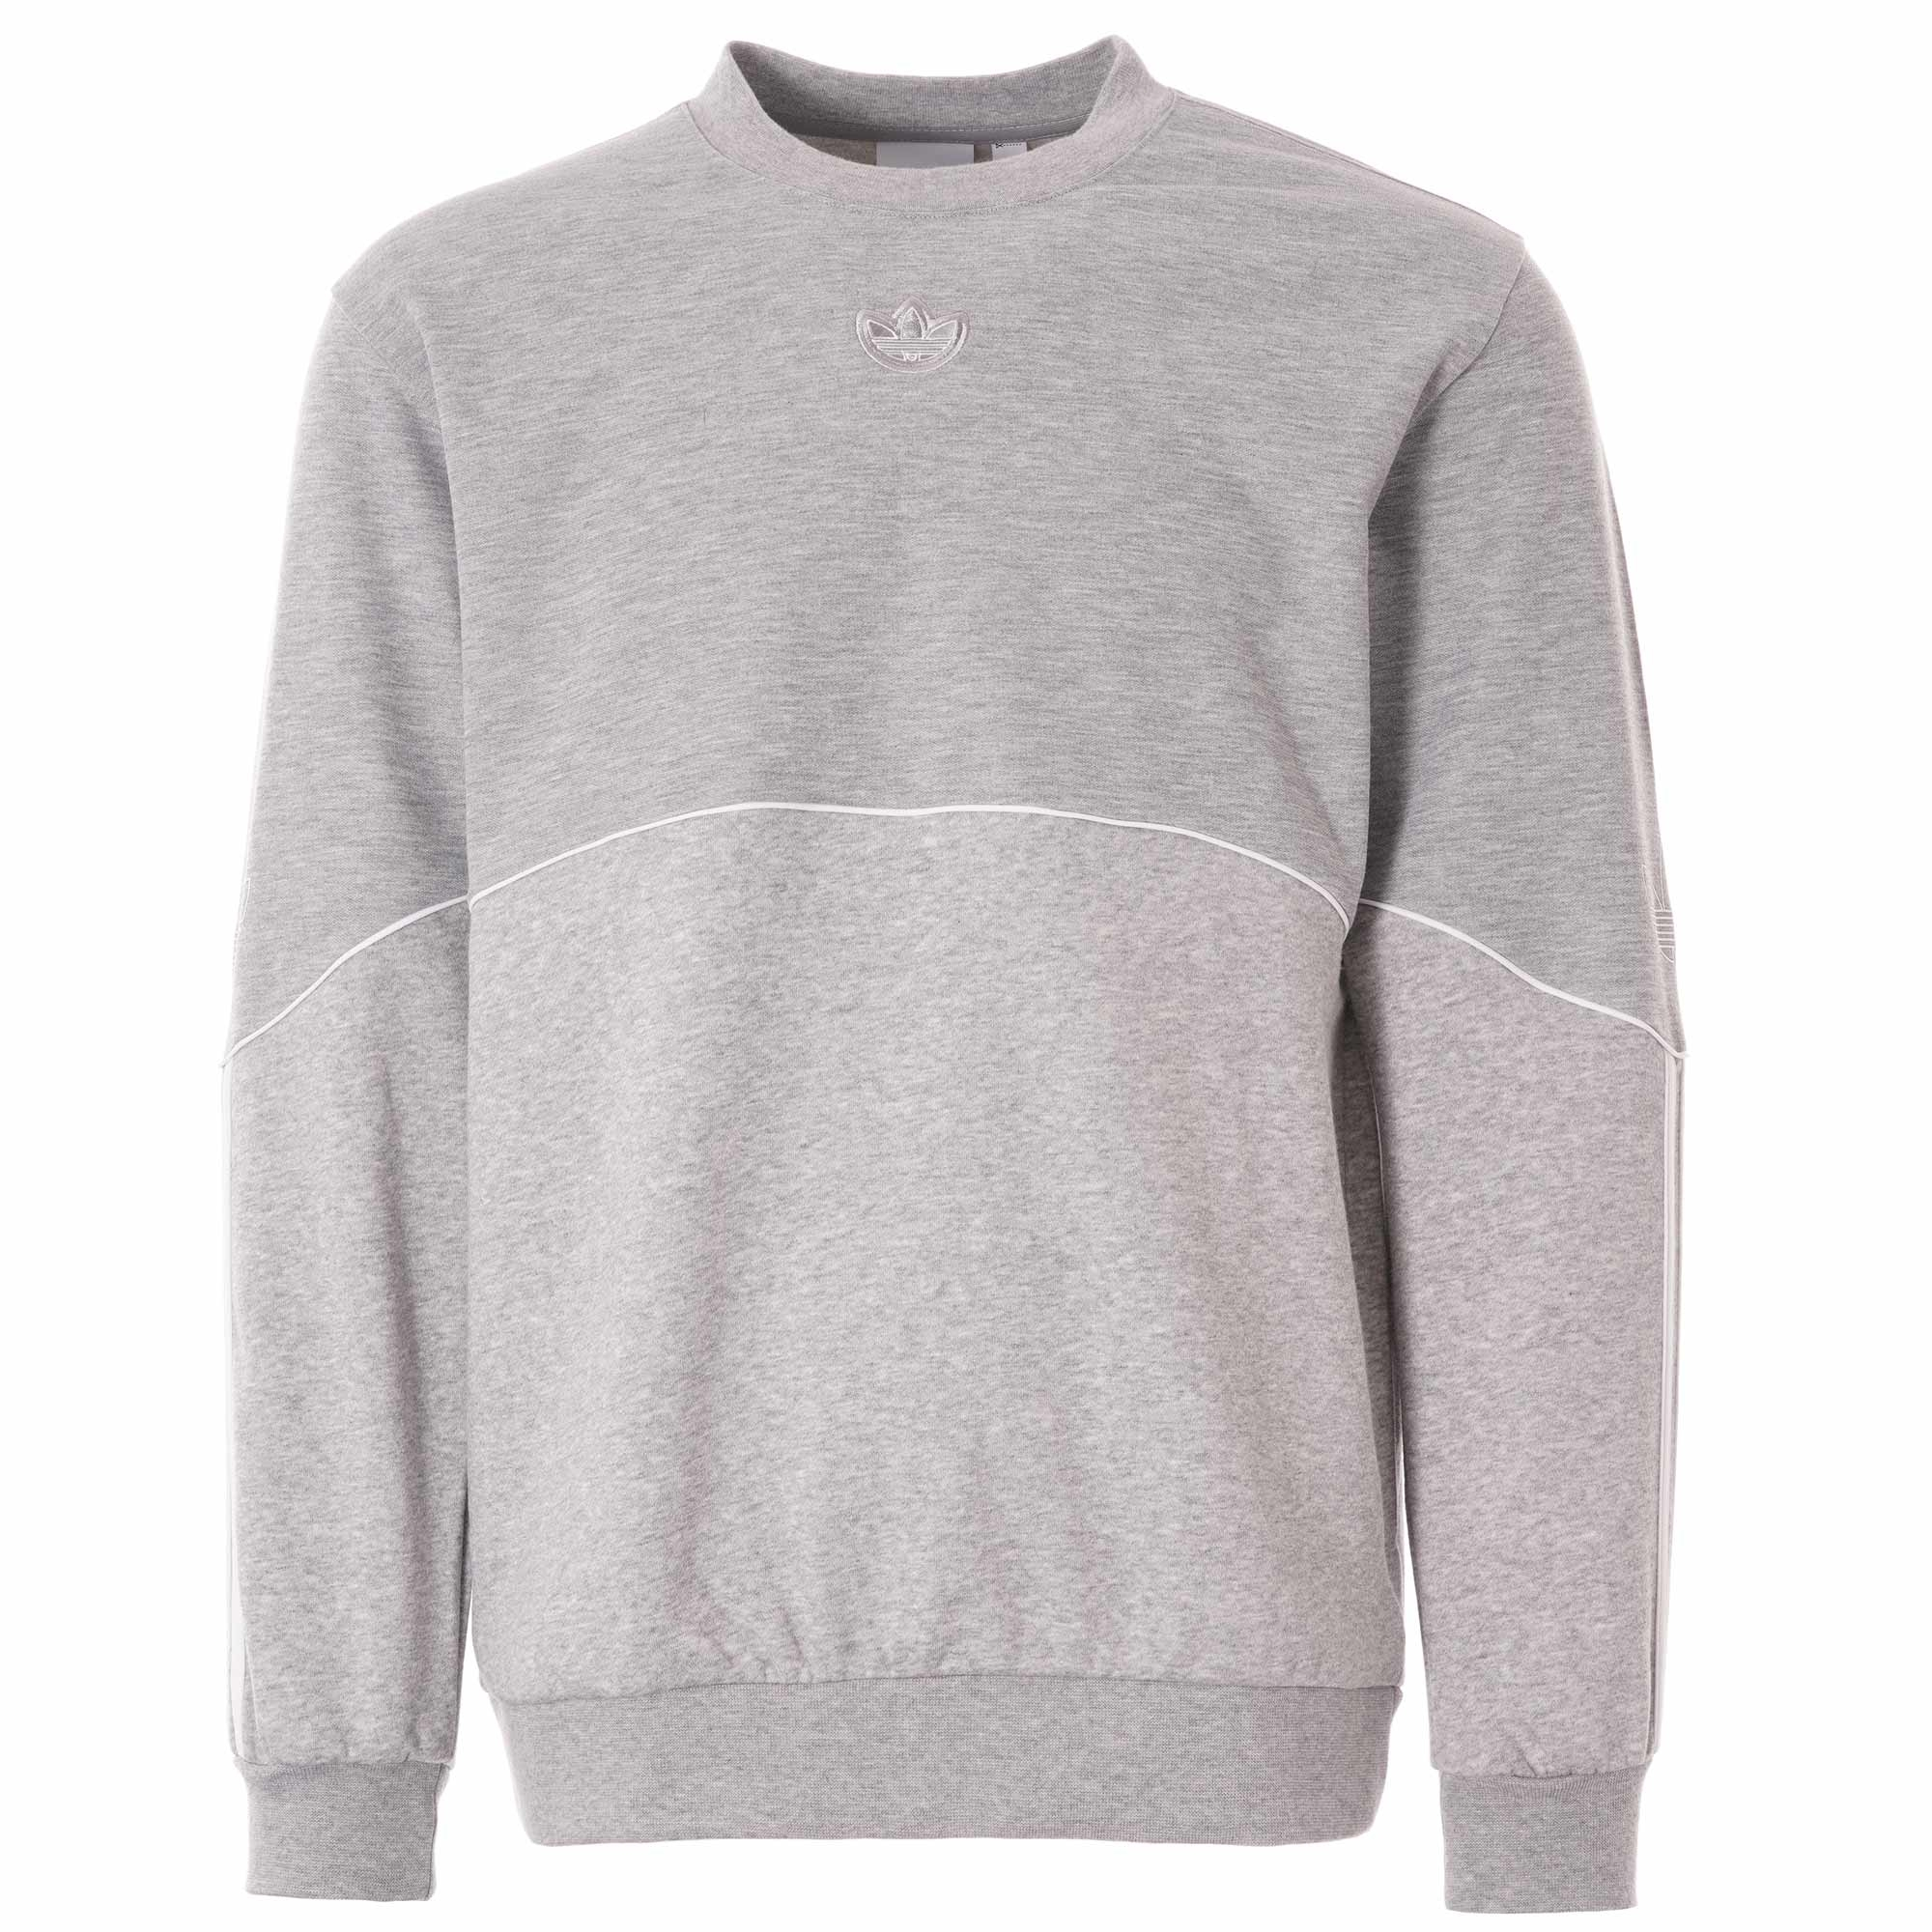 adidas Originals Outline Crew Sweatshirt Grey